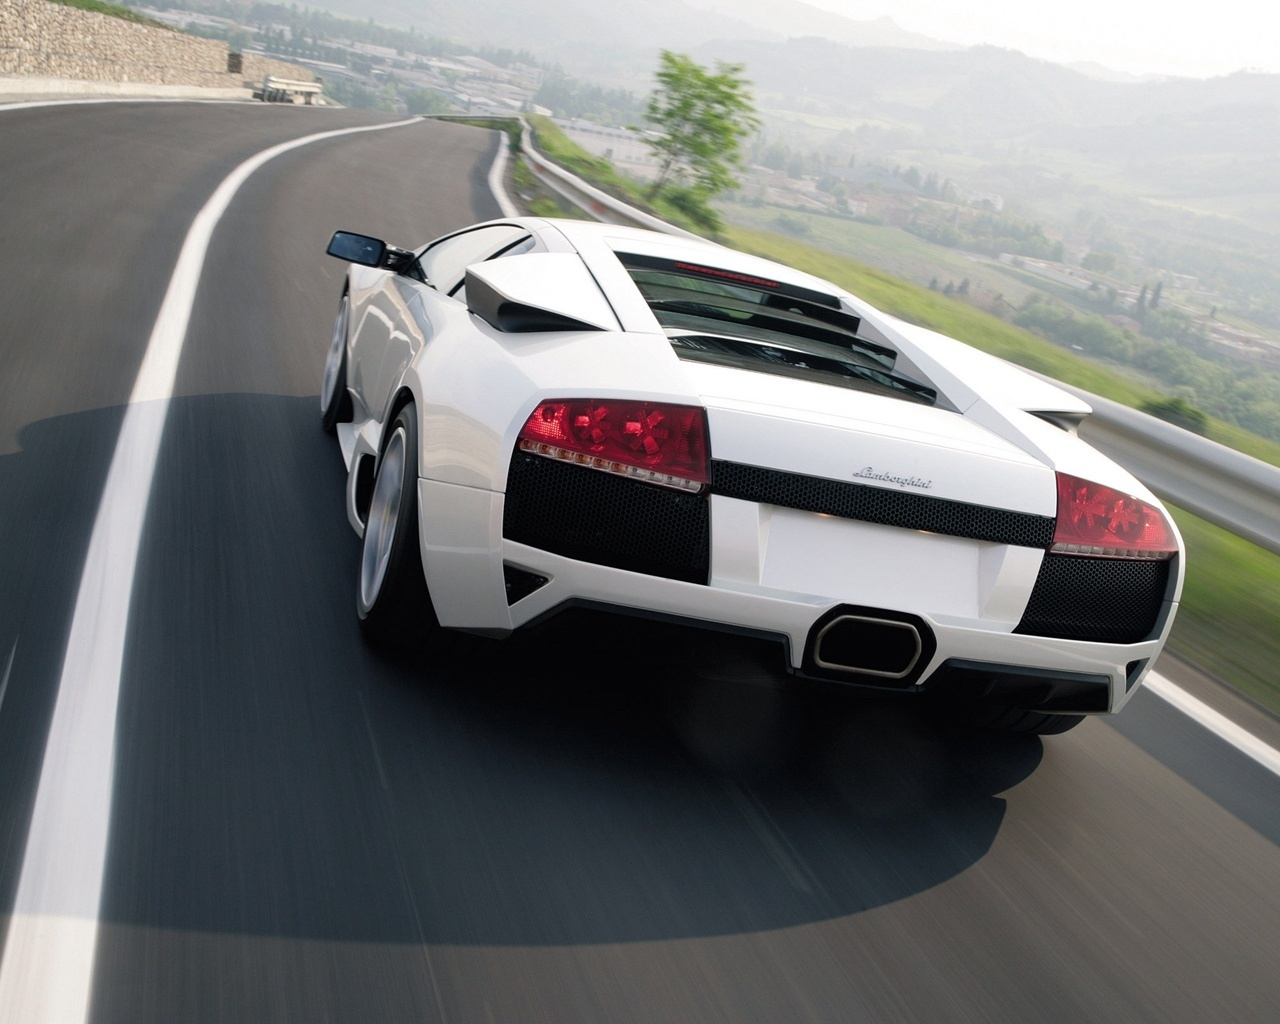 Lamborghini Murcielago LP640 2010 White for 1280 x 1024 resolution